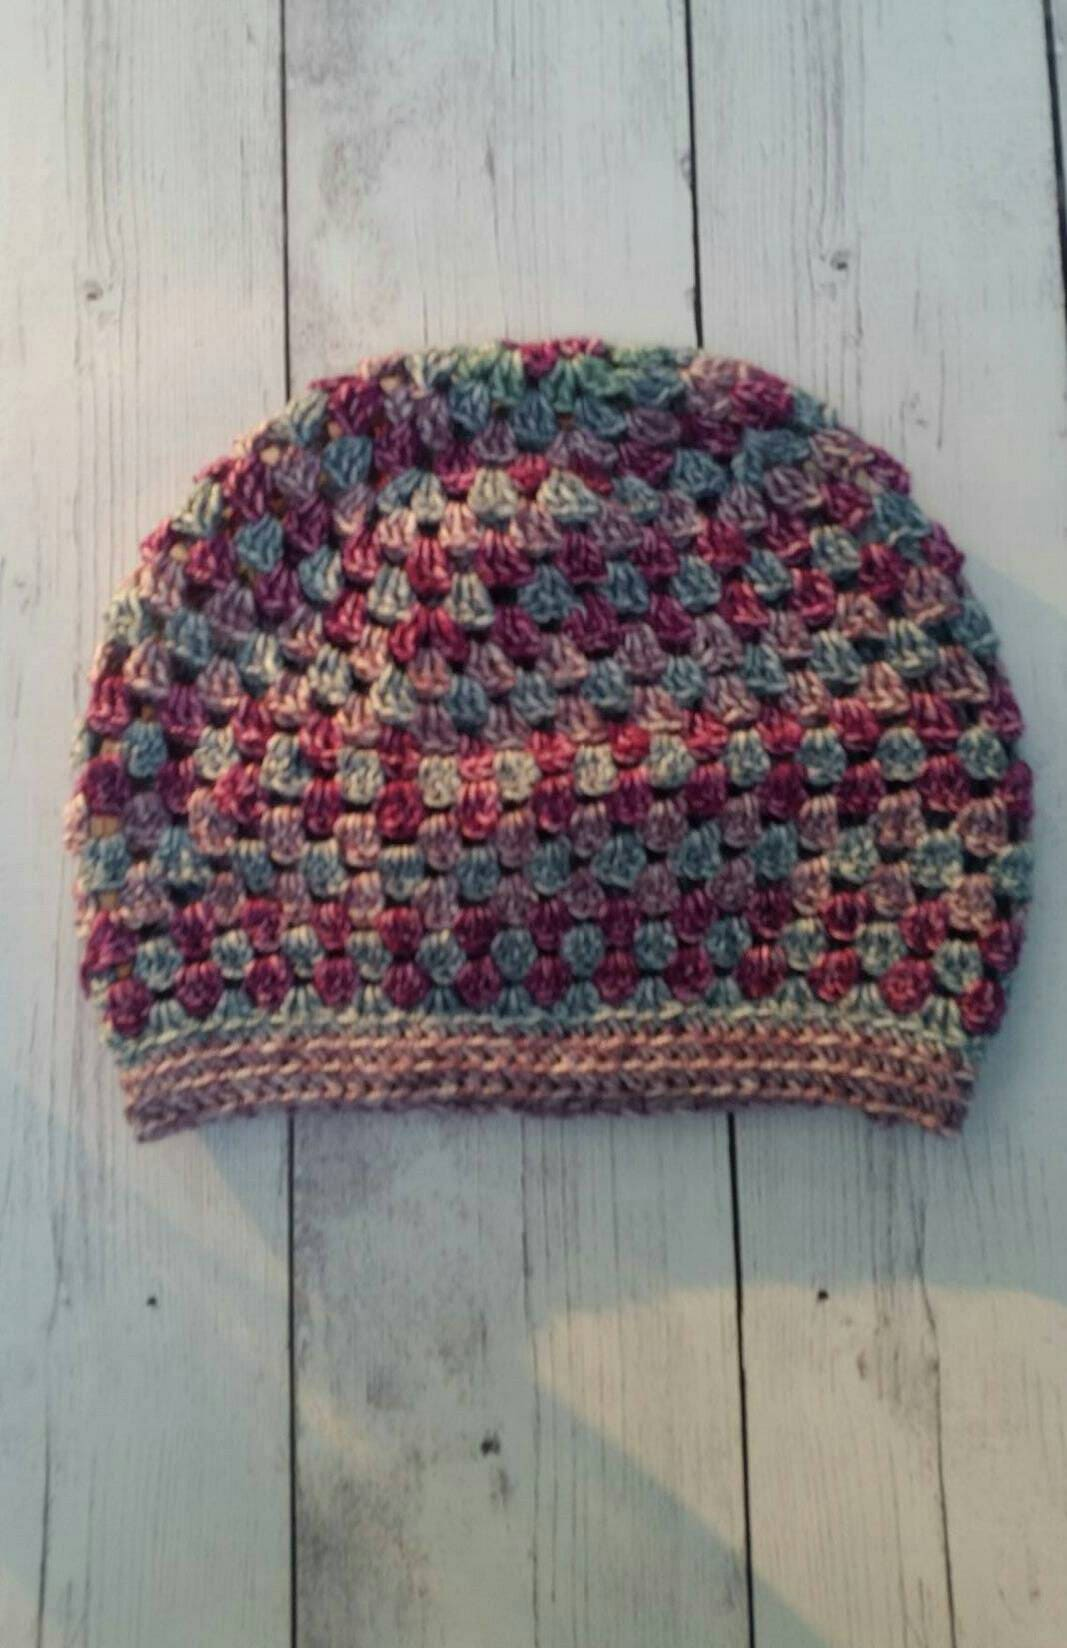 Vintage Look Slouchy Hat, Multi Colored Winter Crochet Beanie, Granny Hat, Hipster Beanie, Dreads Hat, Hippie Hat for Winter, Choose Colors